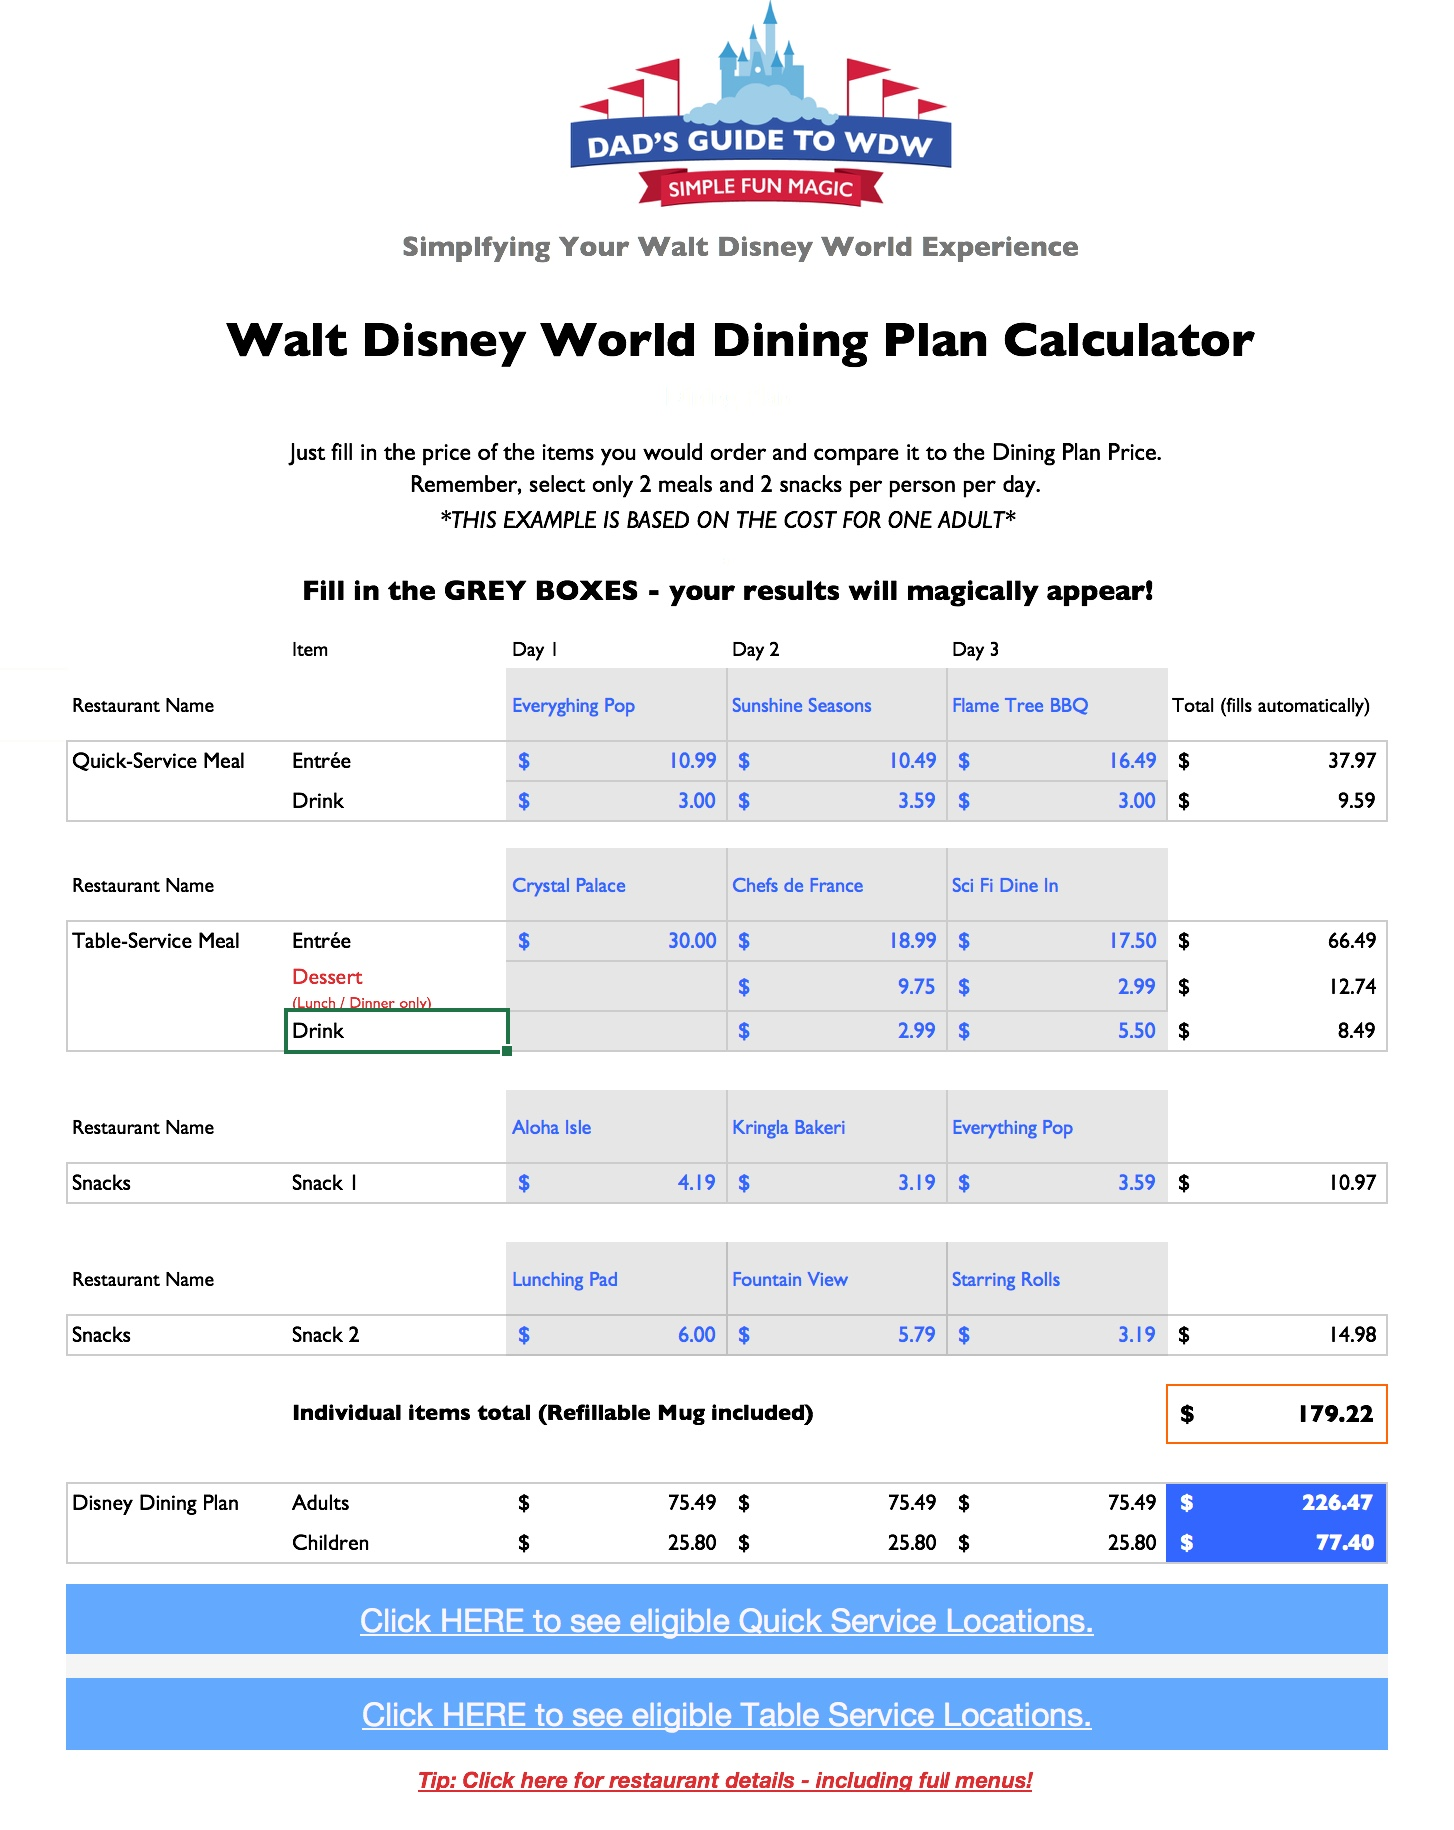 You Do Not Have To Buy The Disney Dining Plan